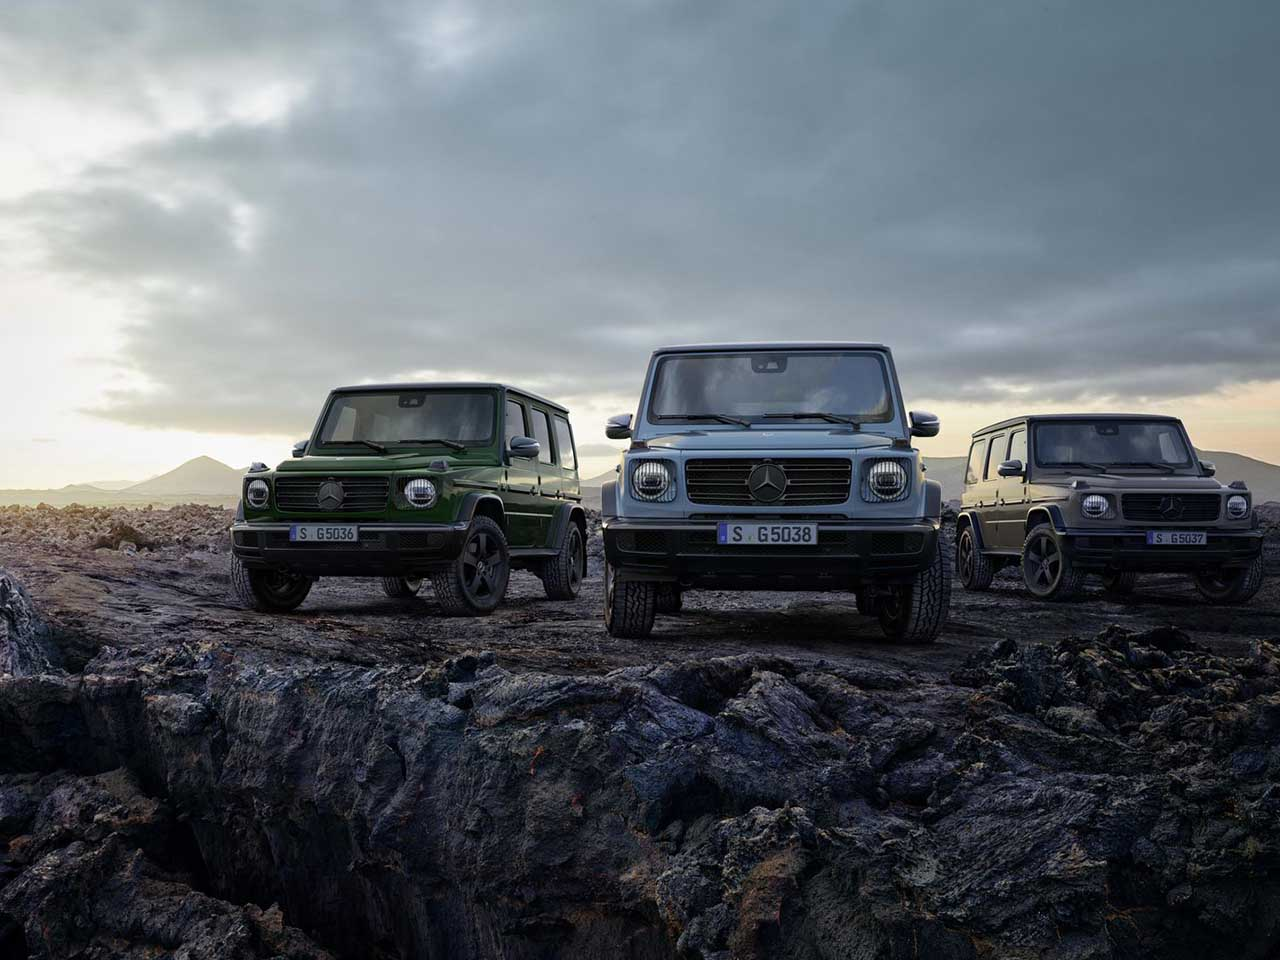 2021 Mercedes Benz G Class Launched In Europe With Significant Updates